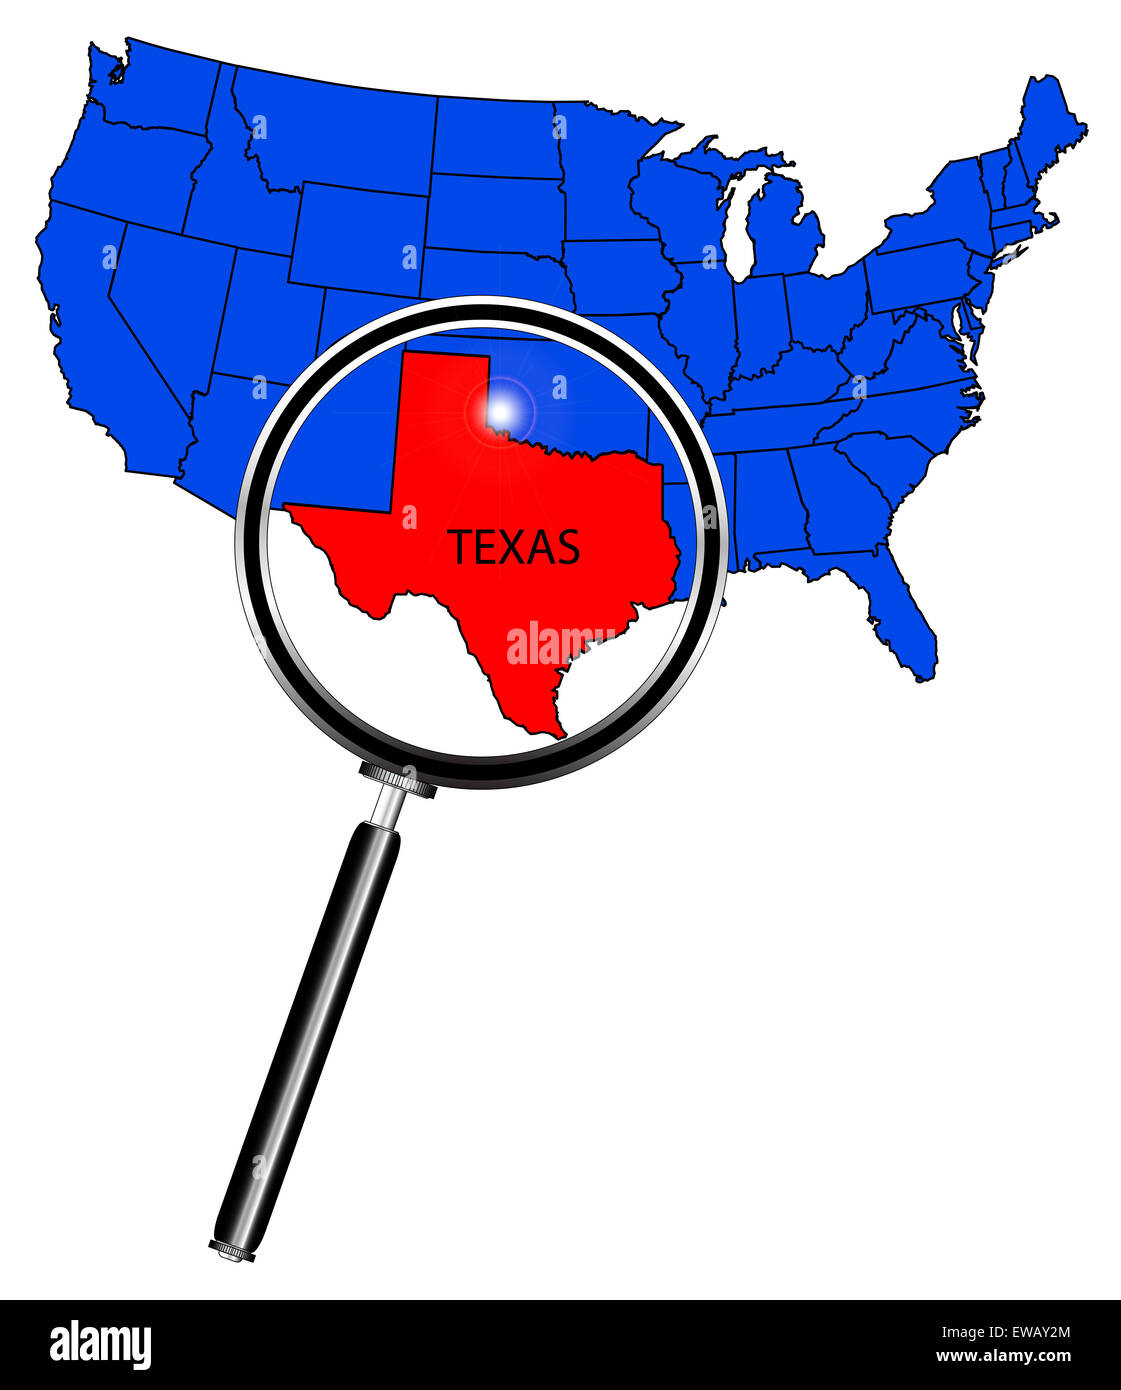 Worksheet. An outline map of The United States of America with Texas